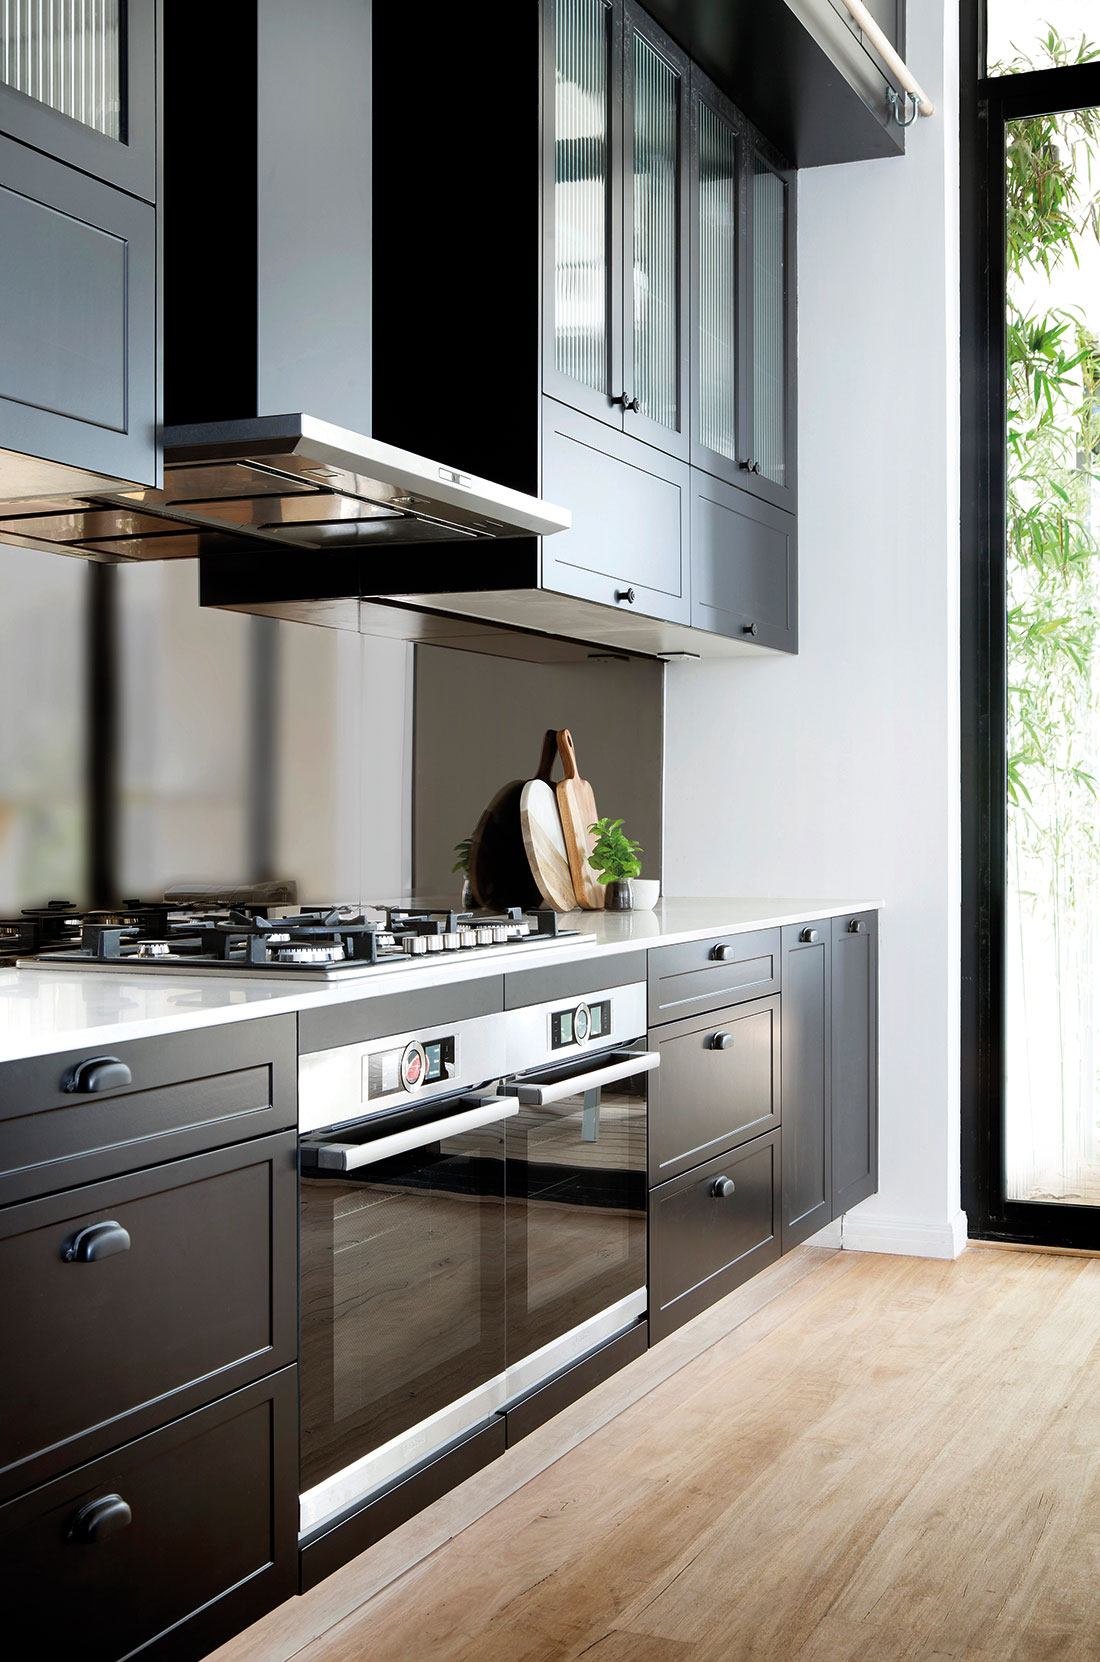 bosch kitchen suite storage solutions best design for the kitchens architecture and